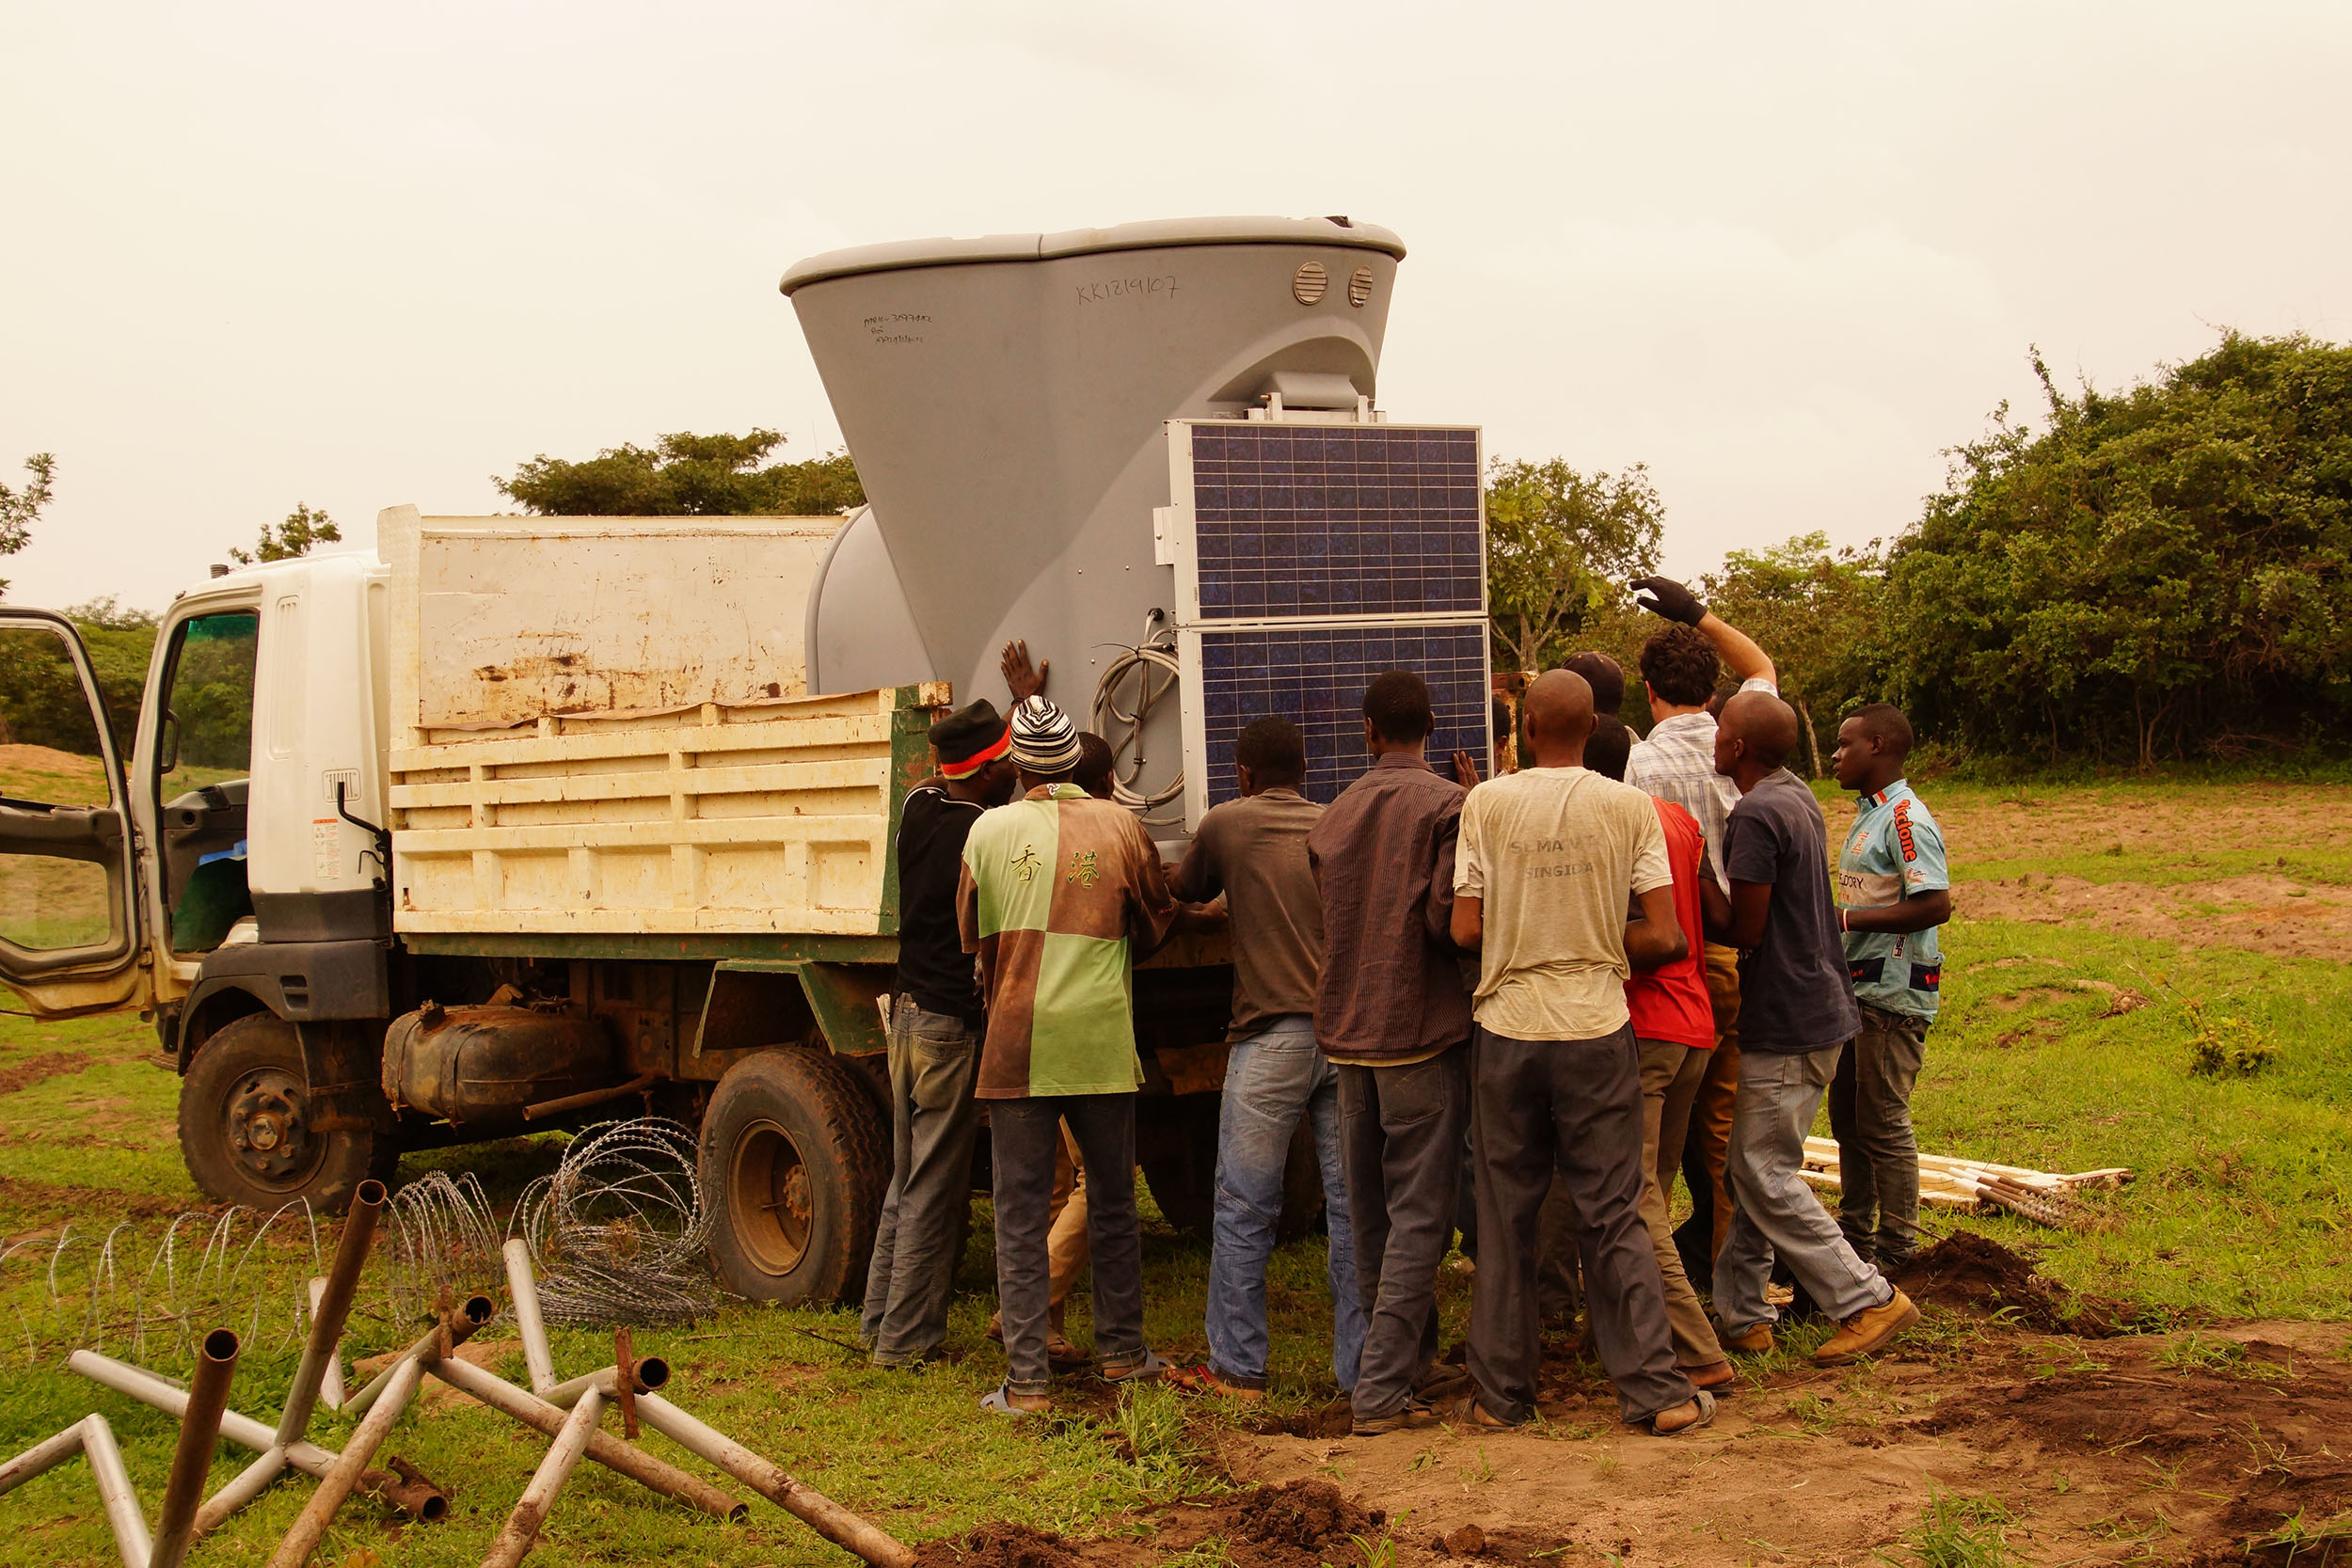 The team loads a SODAR unit and its solar panel onto a truck to move it to another location. The two SODAR units on site are moved periodically to provide additional wind data from multiple locations across wind farm site.